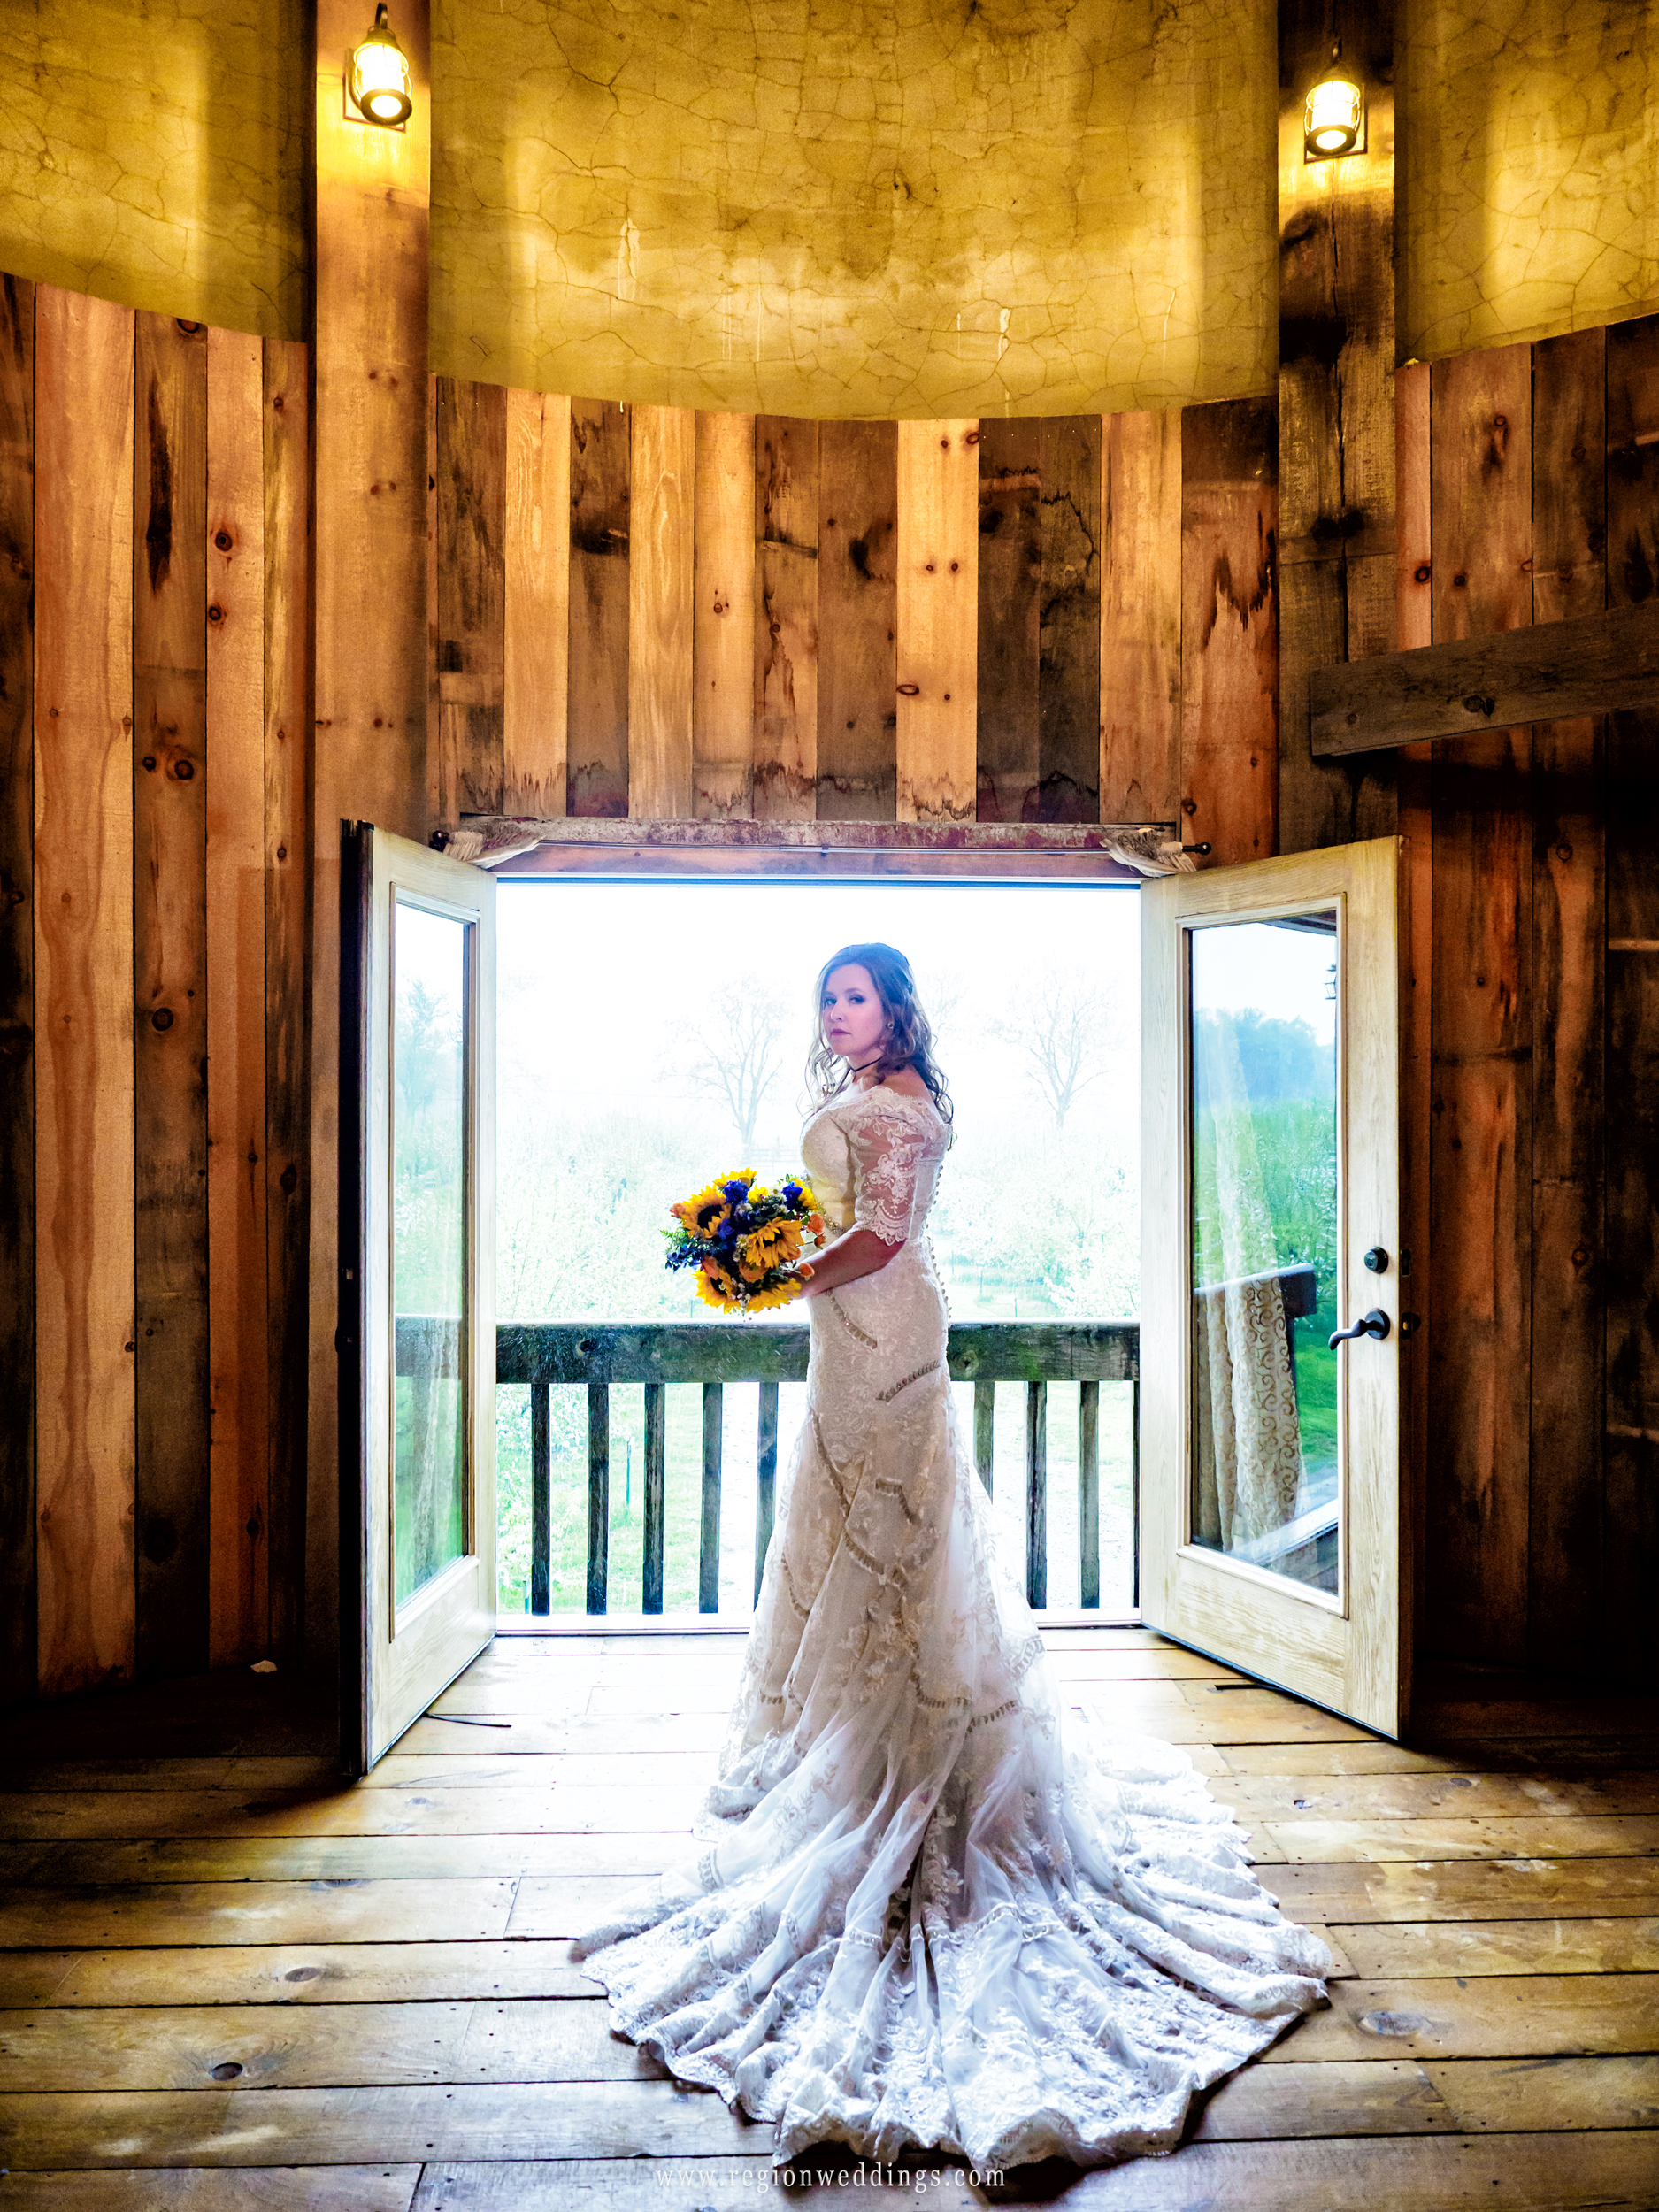 The bride inside the rustic silo bridal suite on her wedding day.